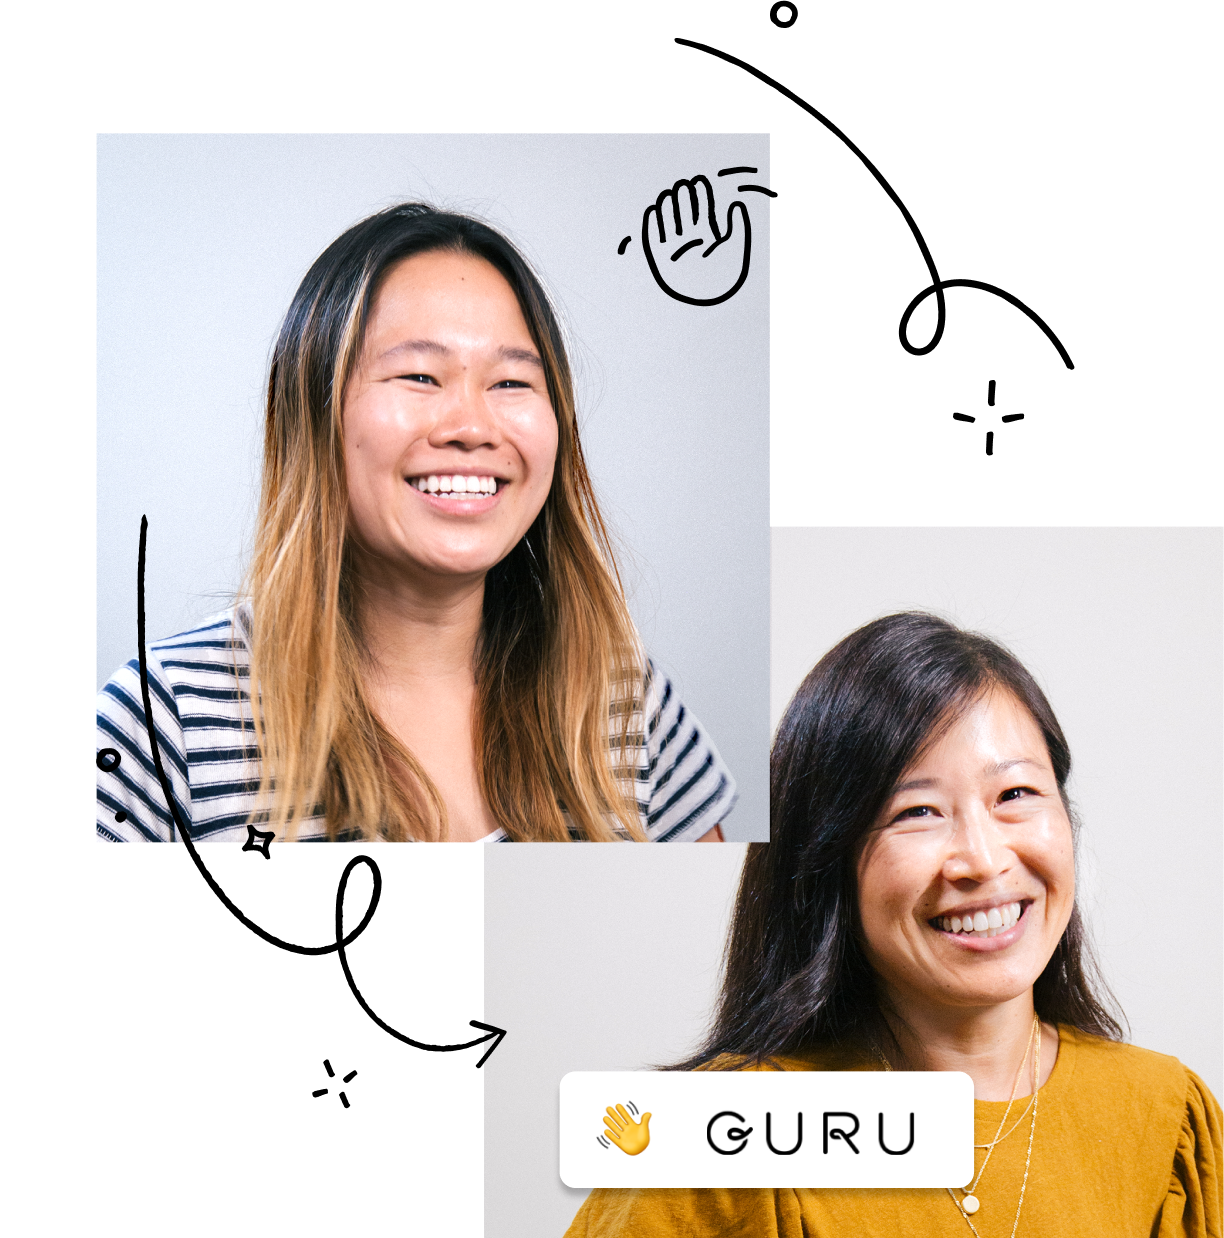 Anne Raimondi, Chief Customer Officer, and June Zhang, Customer Support Manager at Guru